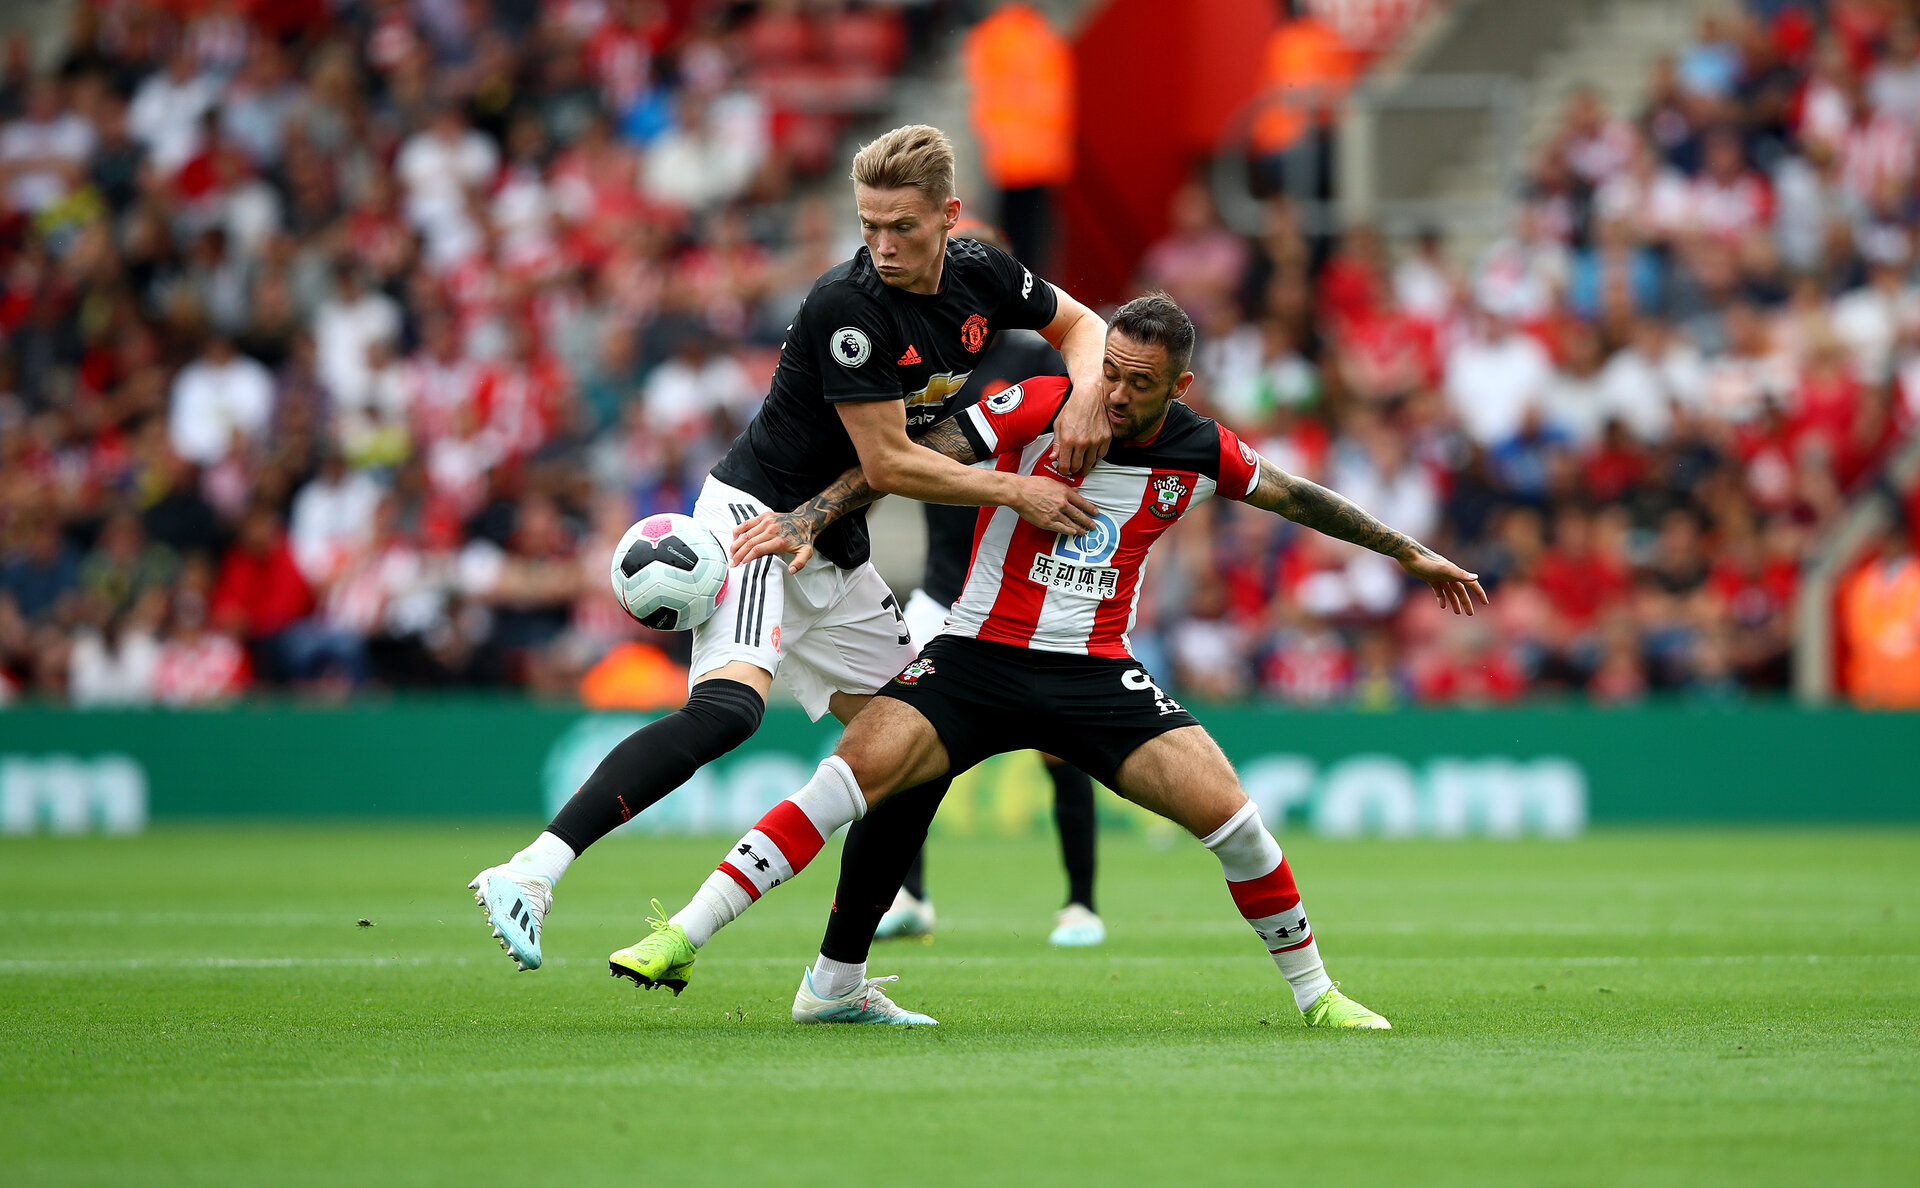 SOUTHAMPTON, ENGLAND - AUGUST 31: Scott McTominay(L) of Manchester United and Danny Ings(R) of Southampton during the Premier League match between Southampton FC and Manchester United at St Mary's Stadium on August 31, 2019 in Southampton, United Kingdom. (Photo by Matt Watson/Southampton FC via Getty Images)